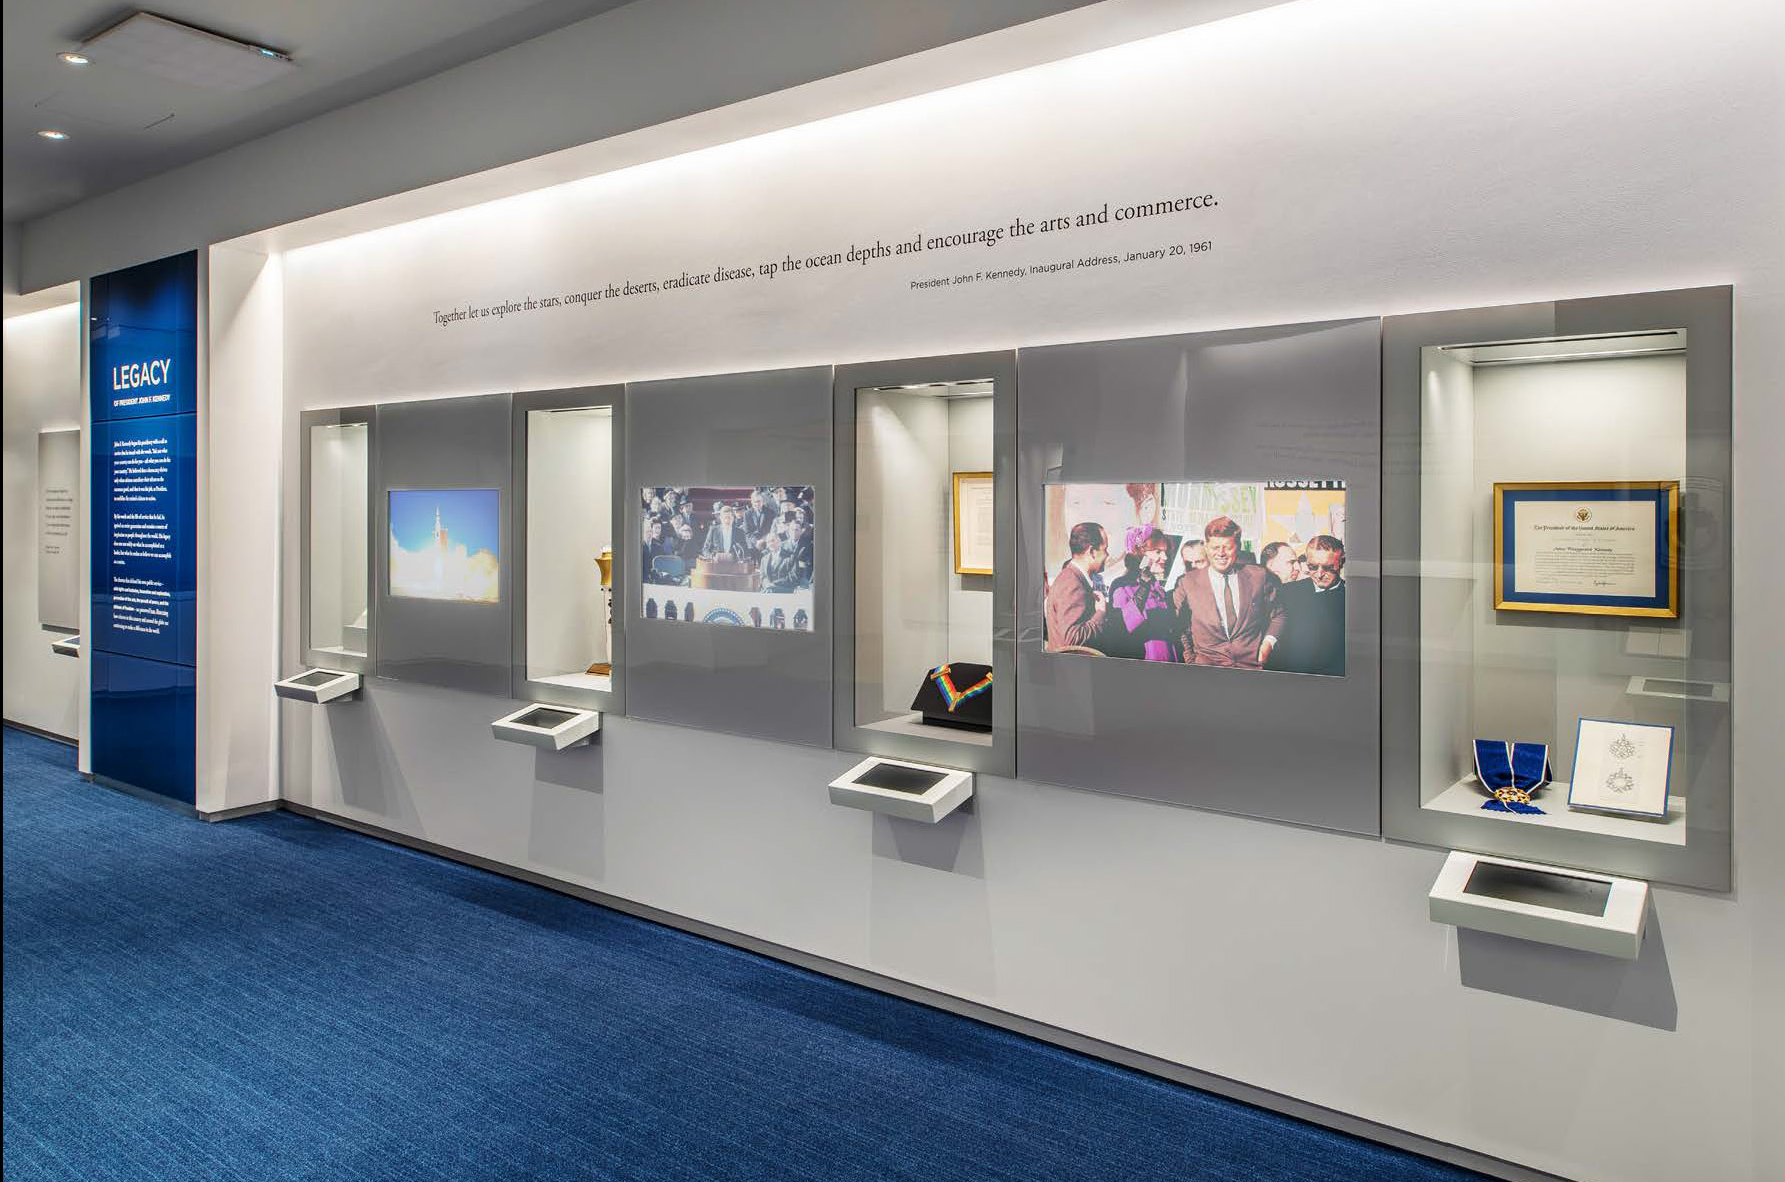 IKD was the architect for the renovation of the John F. Kennedy Library's Legacy Gallery, which highlights domestic and international accomplishments inspired by the legacy of JFK's life and administration. IKD collaborated with the library's in-house exhibition designer, media designer, and graphic designer to completely re-envision the space resulting in gut renovation which including adding multimedia interactive elements, updating lighting and finishes, and negotiating existing structural and HVAC conditions to incorporate new, more functional casework for better display of artifacts. The project was completed recently and the gallery opened in May 2019.